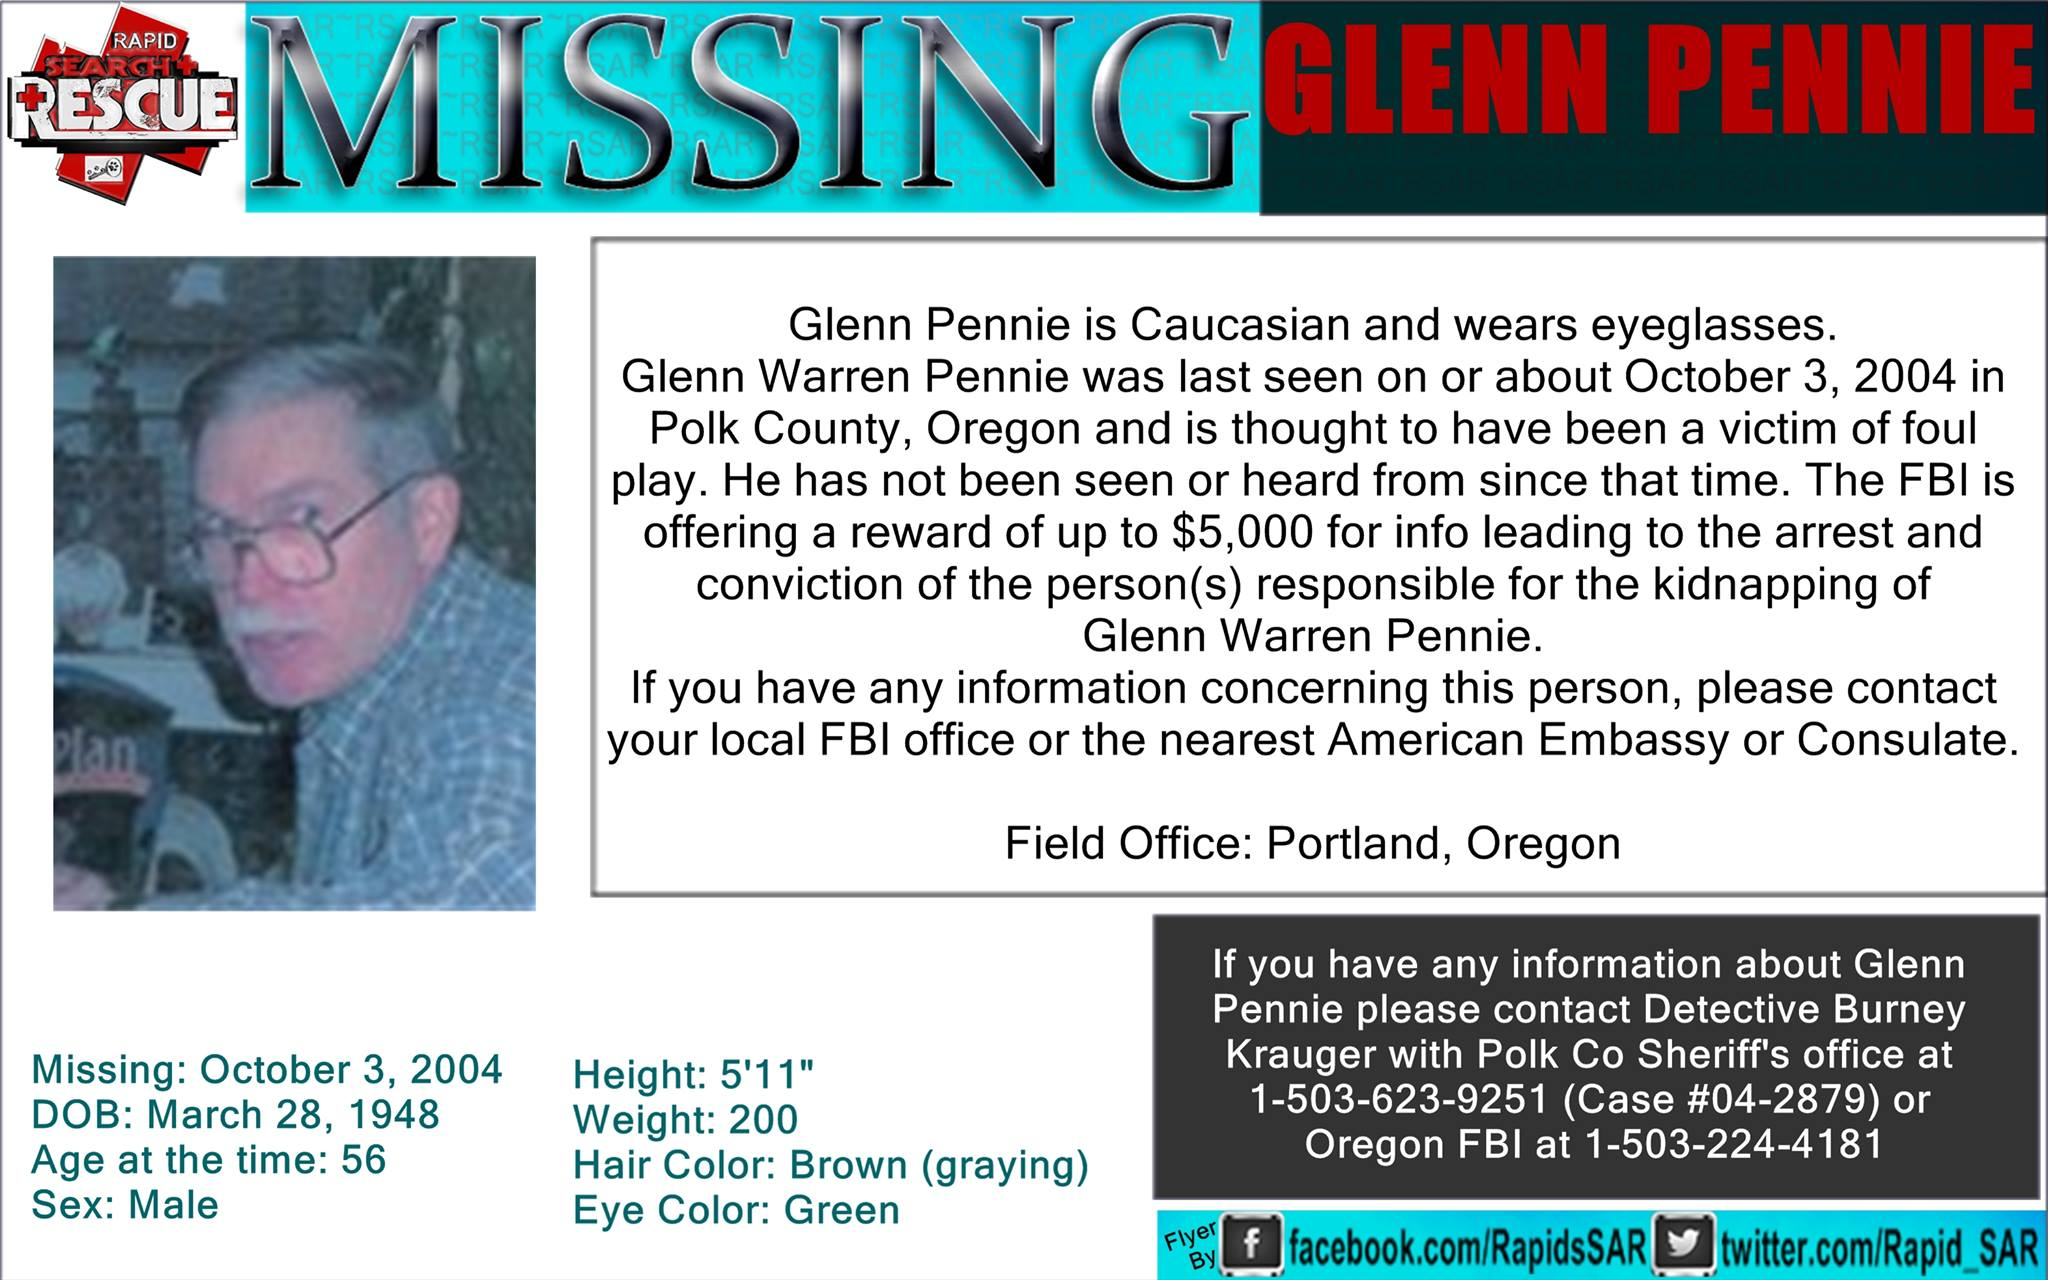 Glenn Pennie Missing Persons Flyer